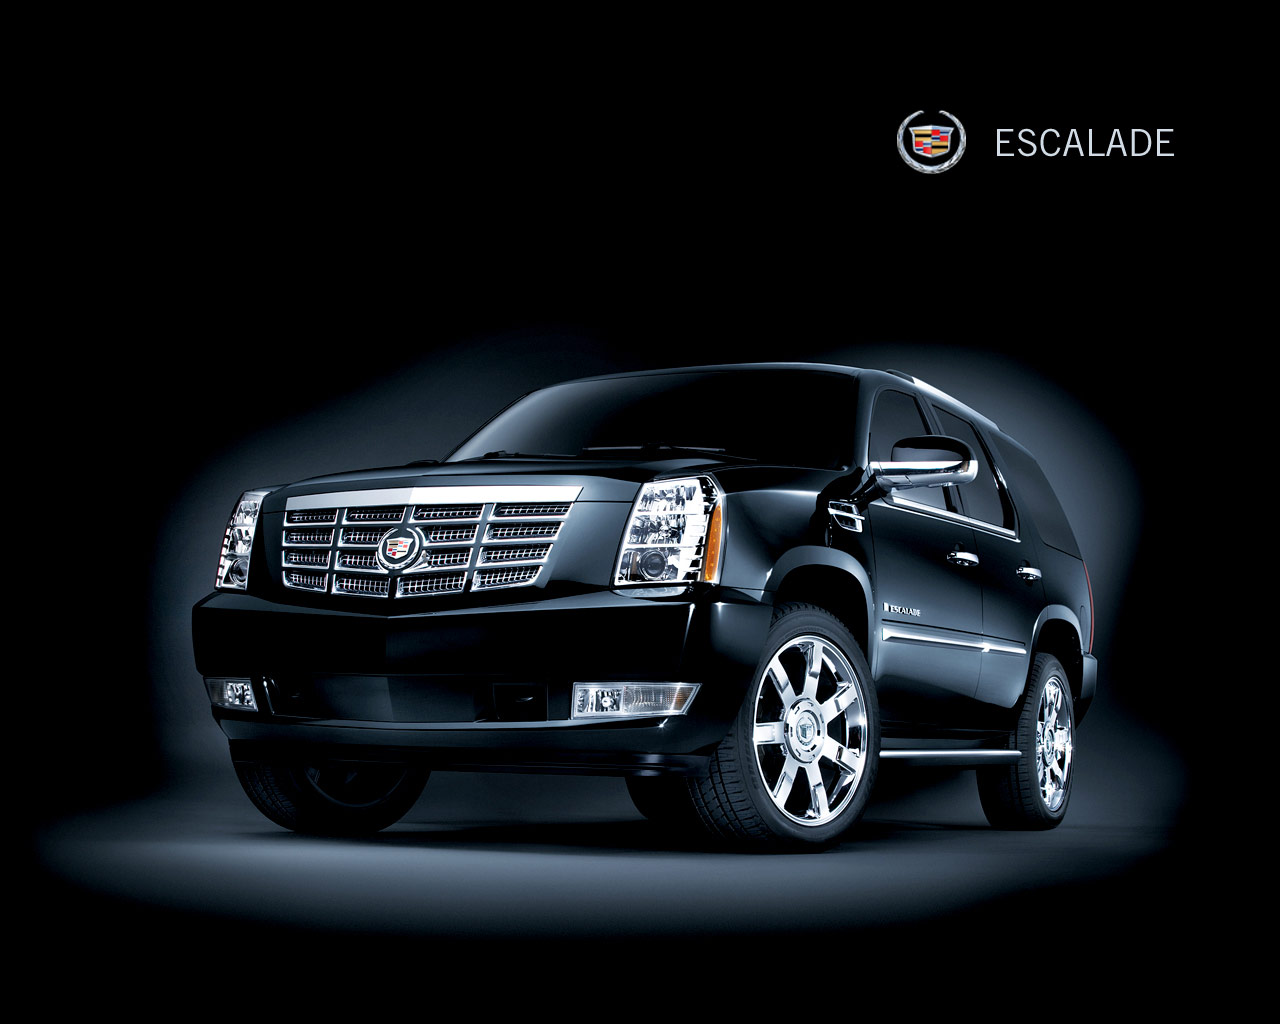 Awesome Cadillac Escalade Backgrounds for Desktop: 06.02.15